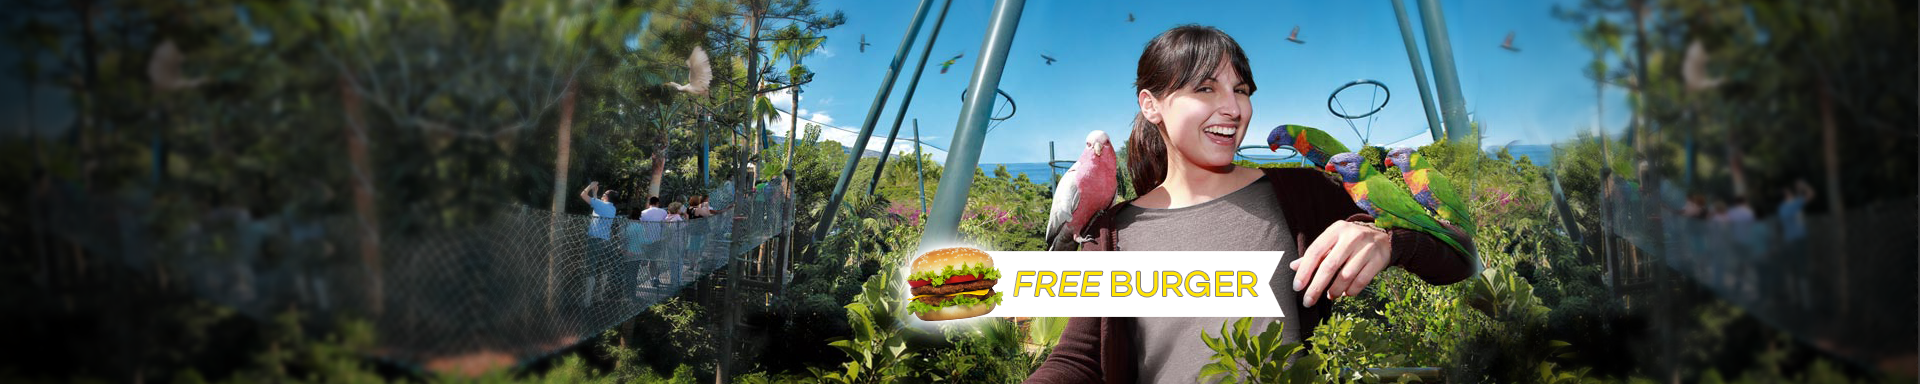 ATD EXCLUSIVE - Free Burger with every Loro Parque Ticket logo